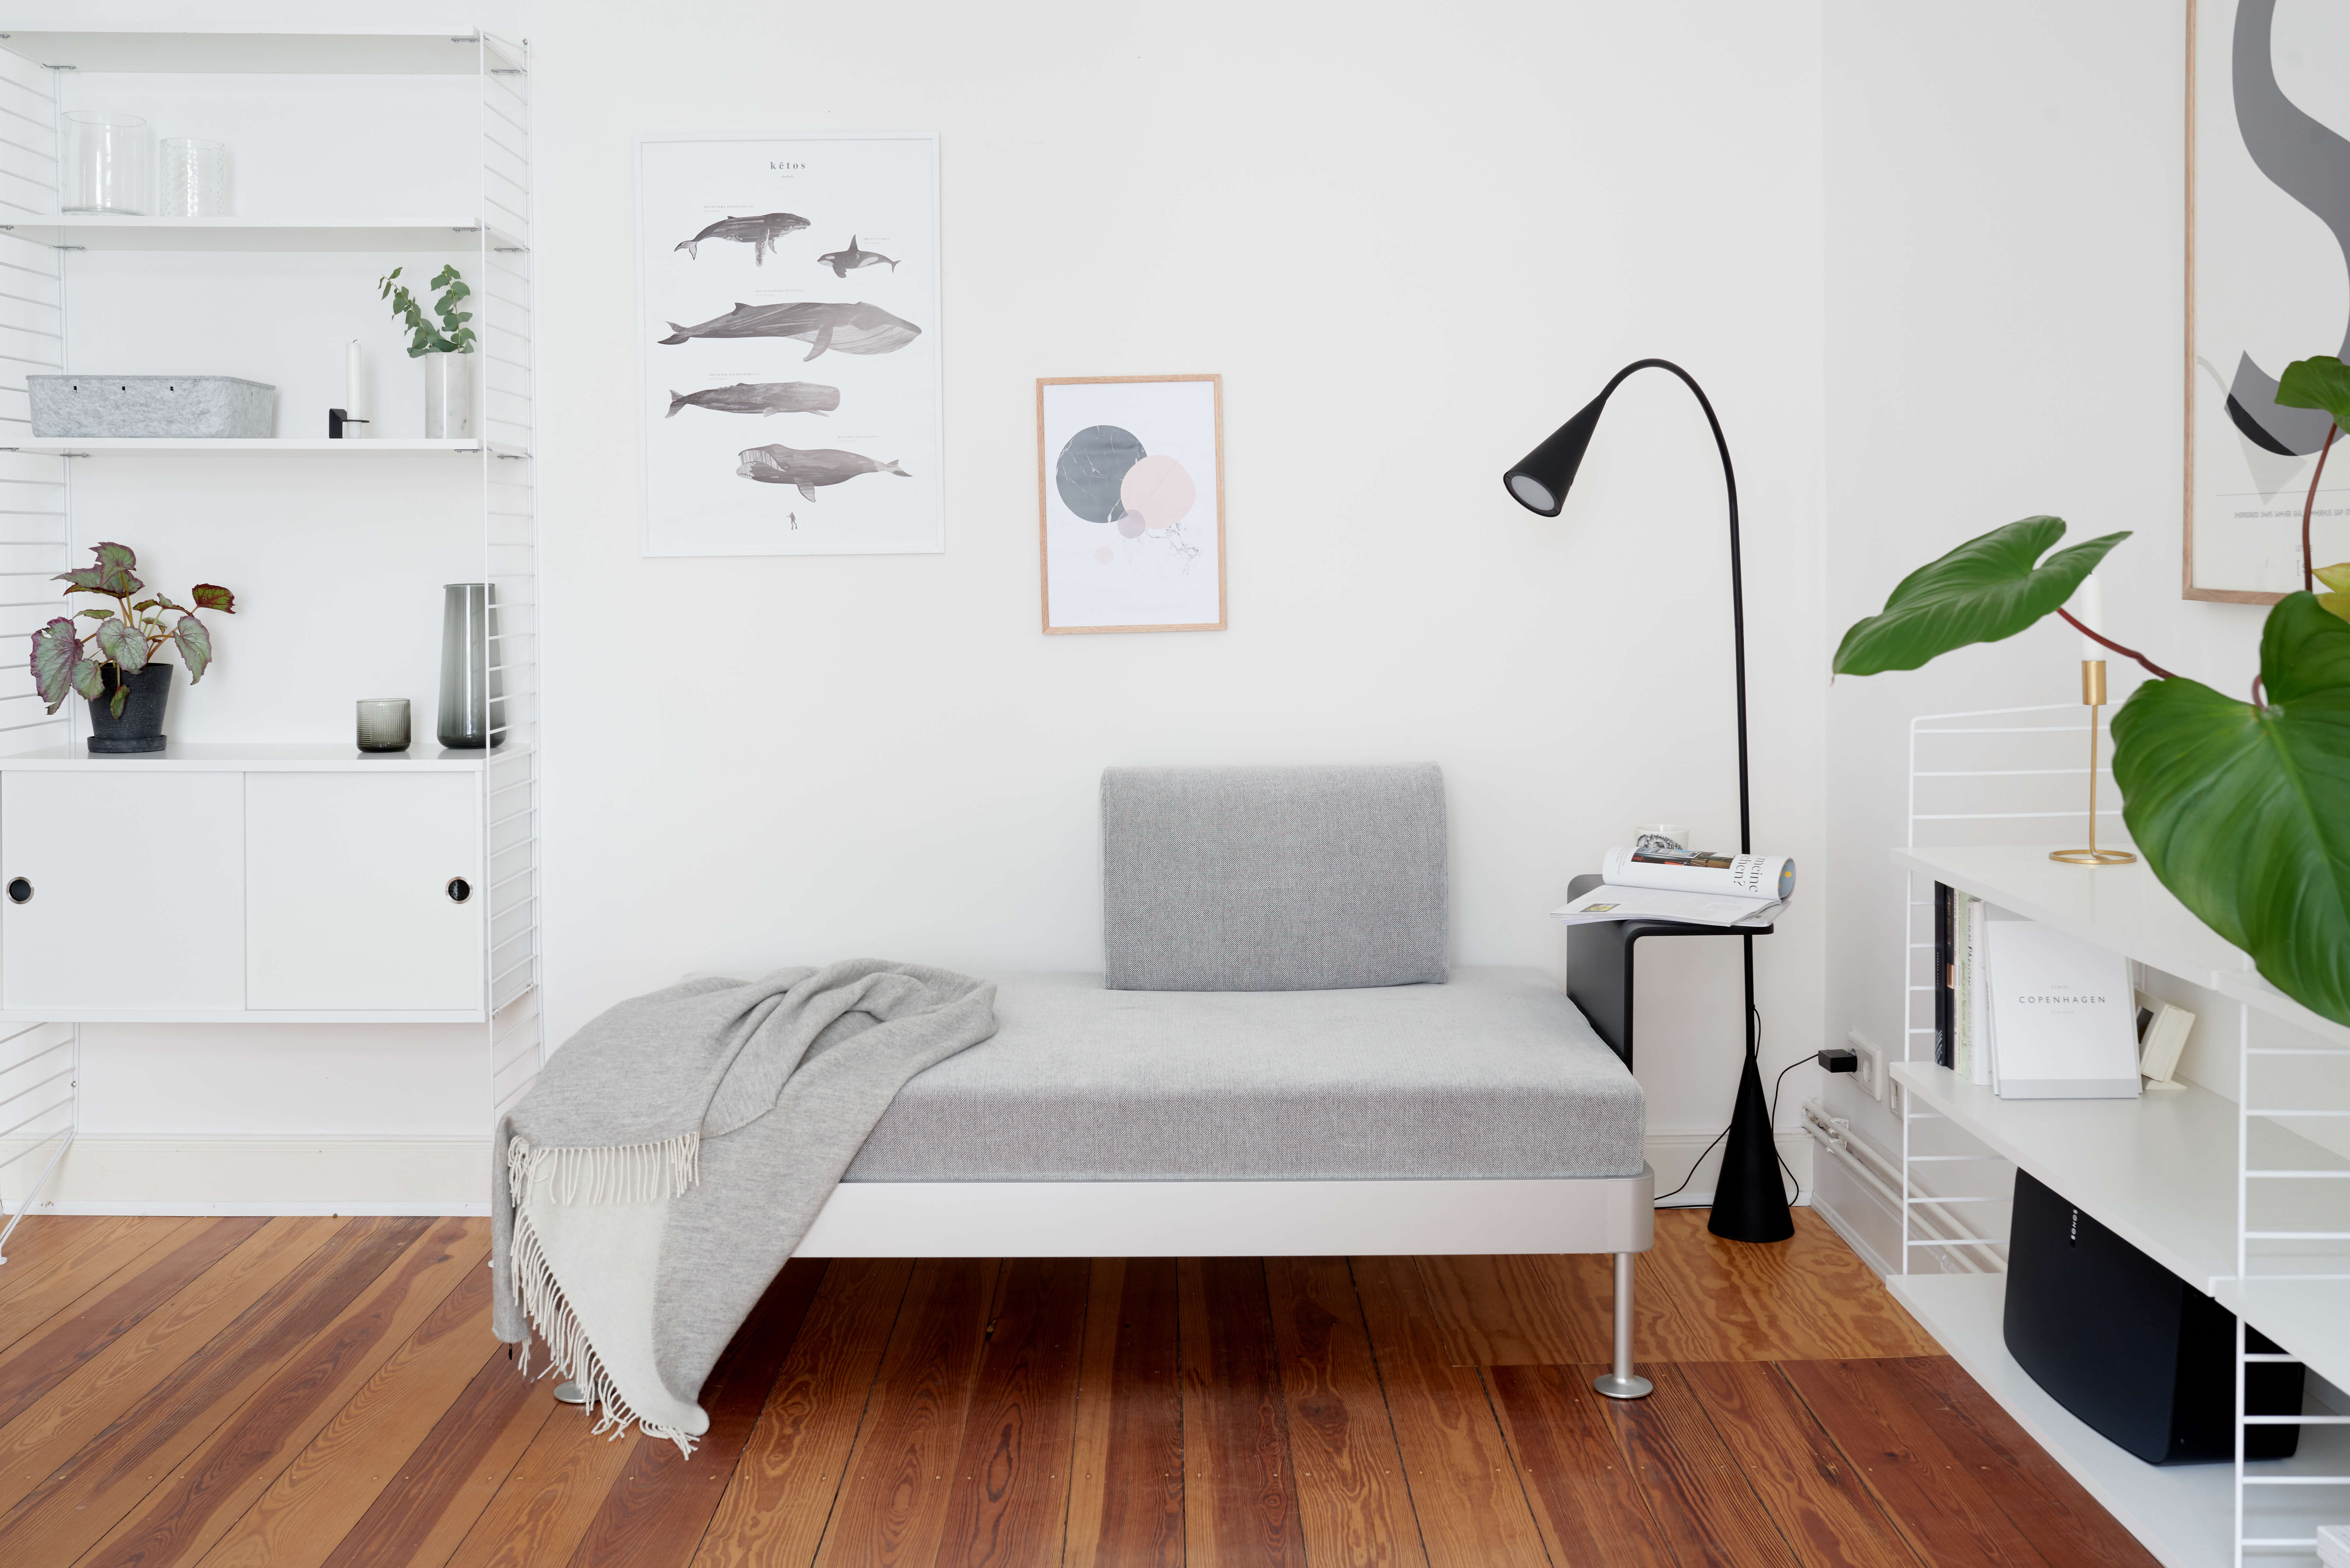 wohn.glück - interior design hamburg | Do your thing! IKEA x Tom ...